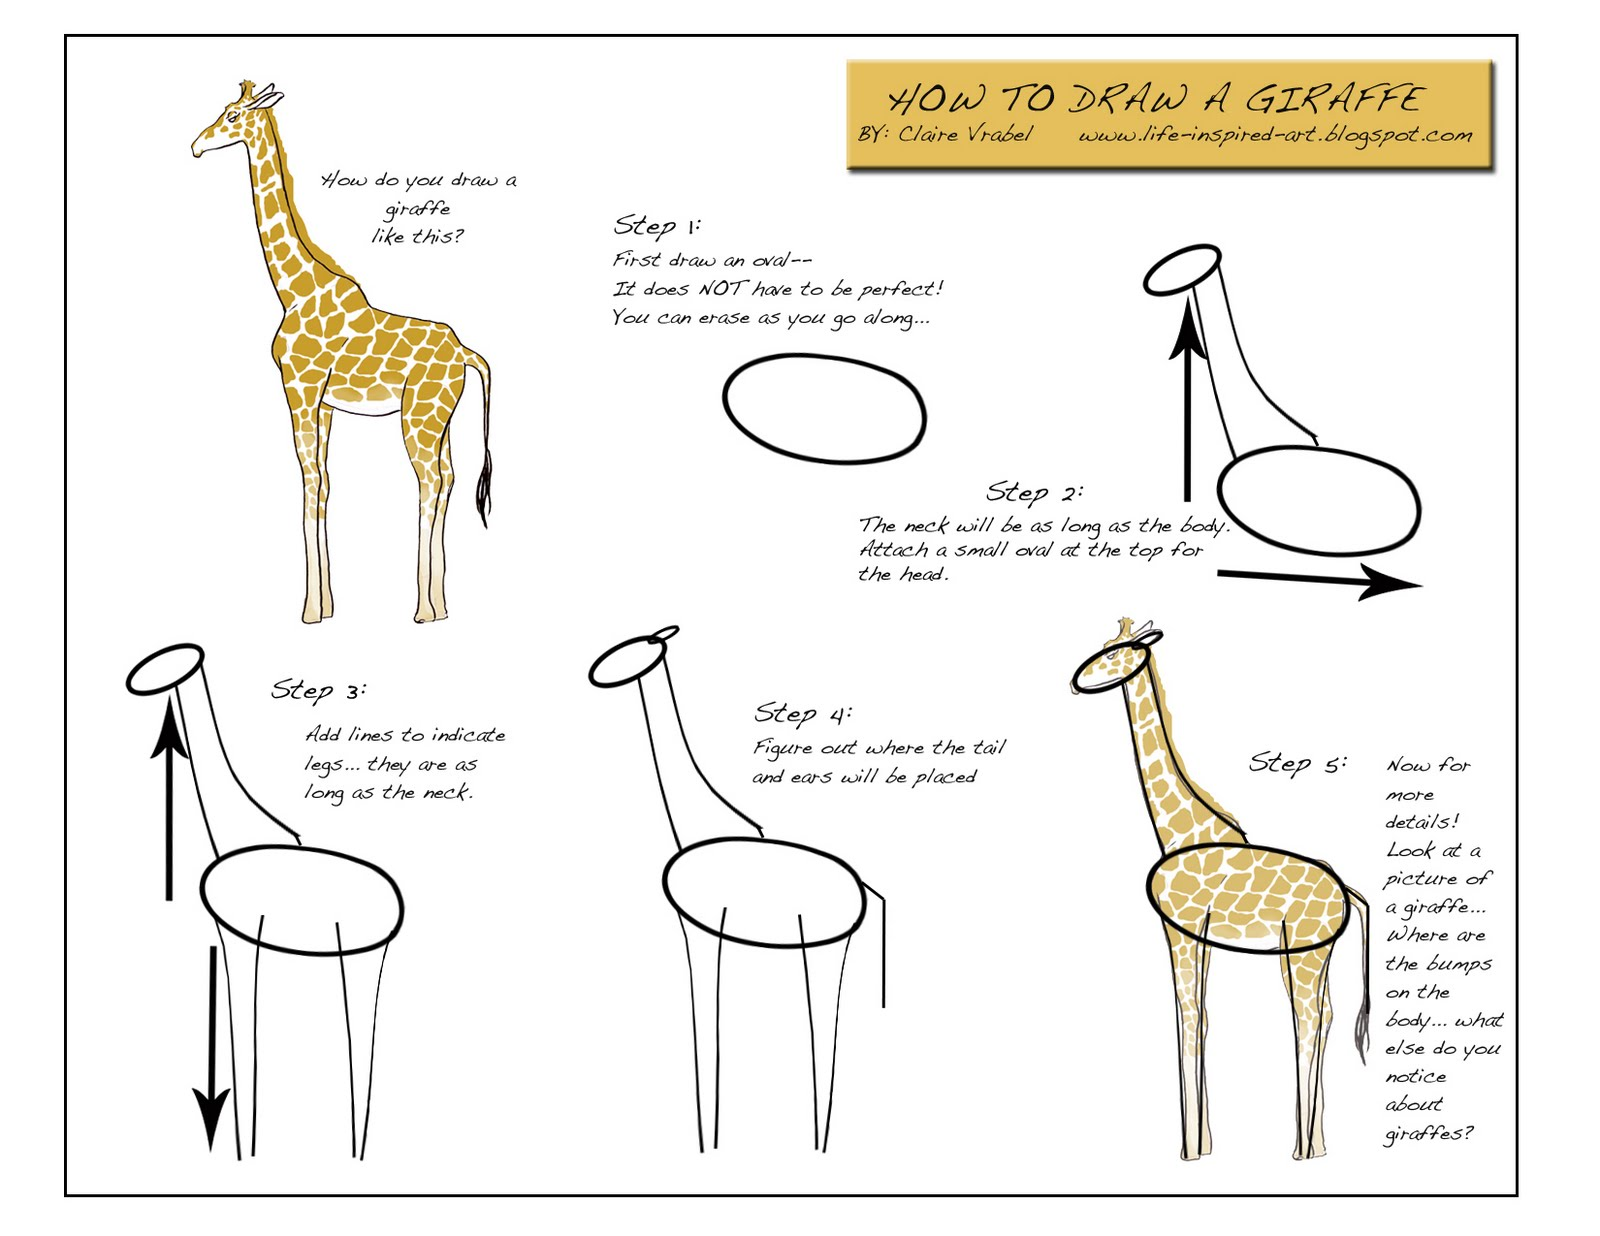 Life Inspired Art: How to Draw a Giraffe!